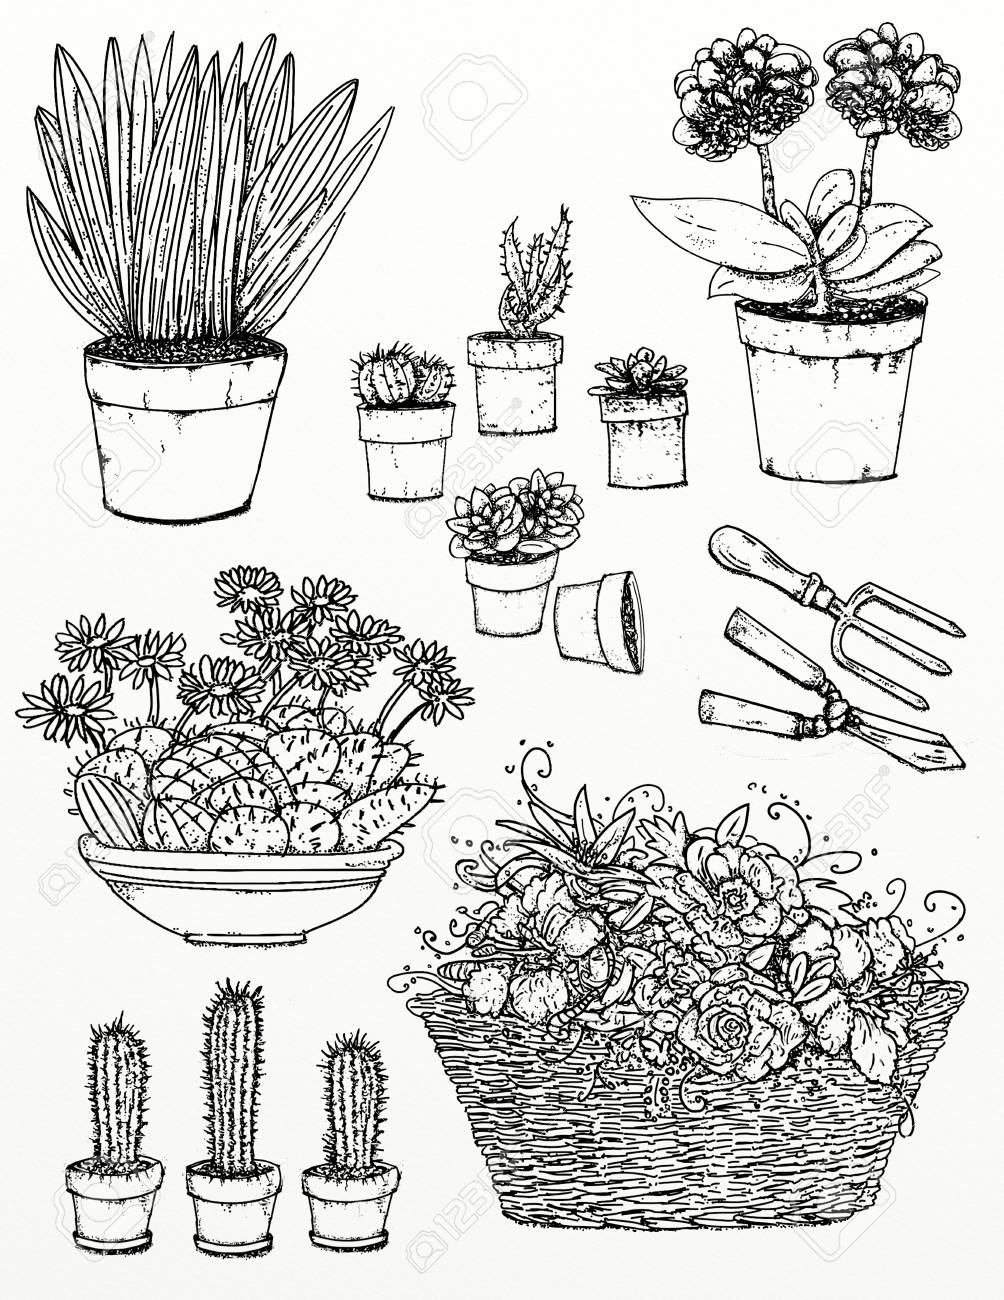 Realistic Drawings Of Plants And Gardens Garden Flowers Plants